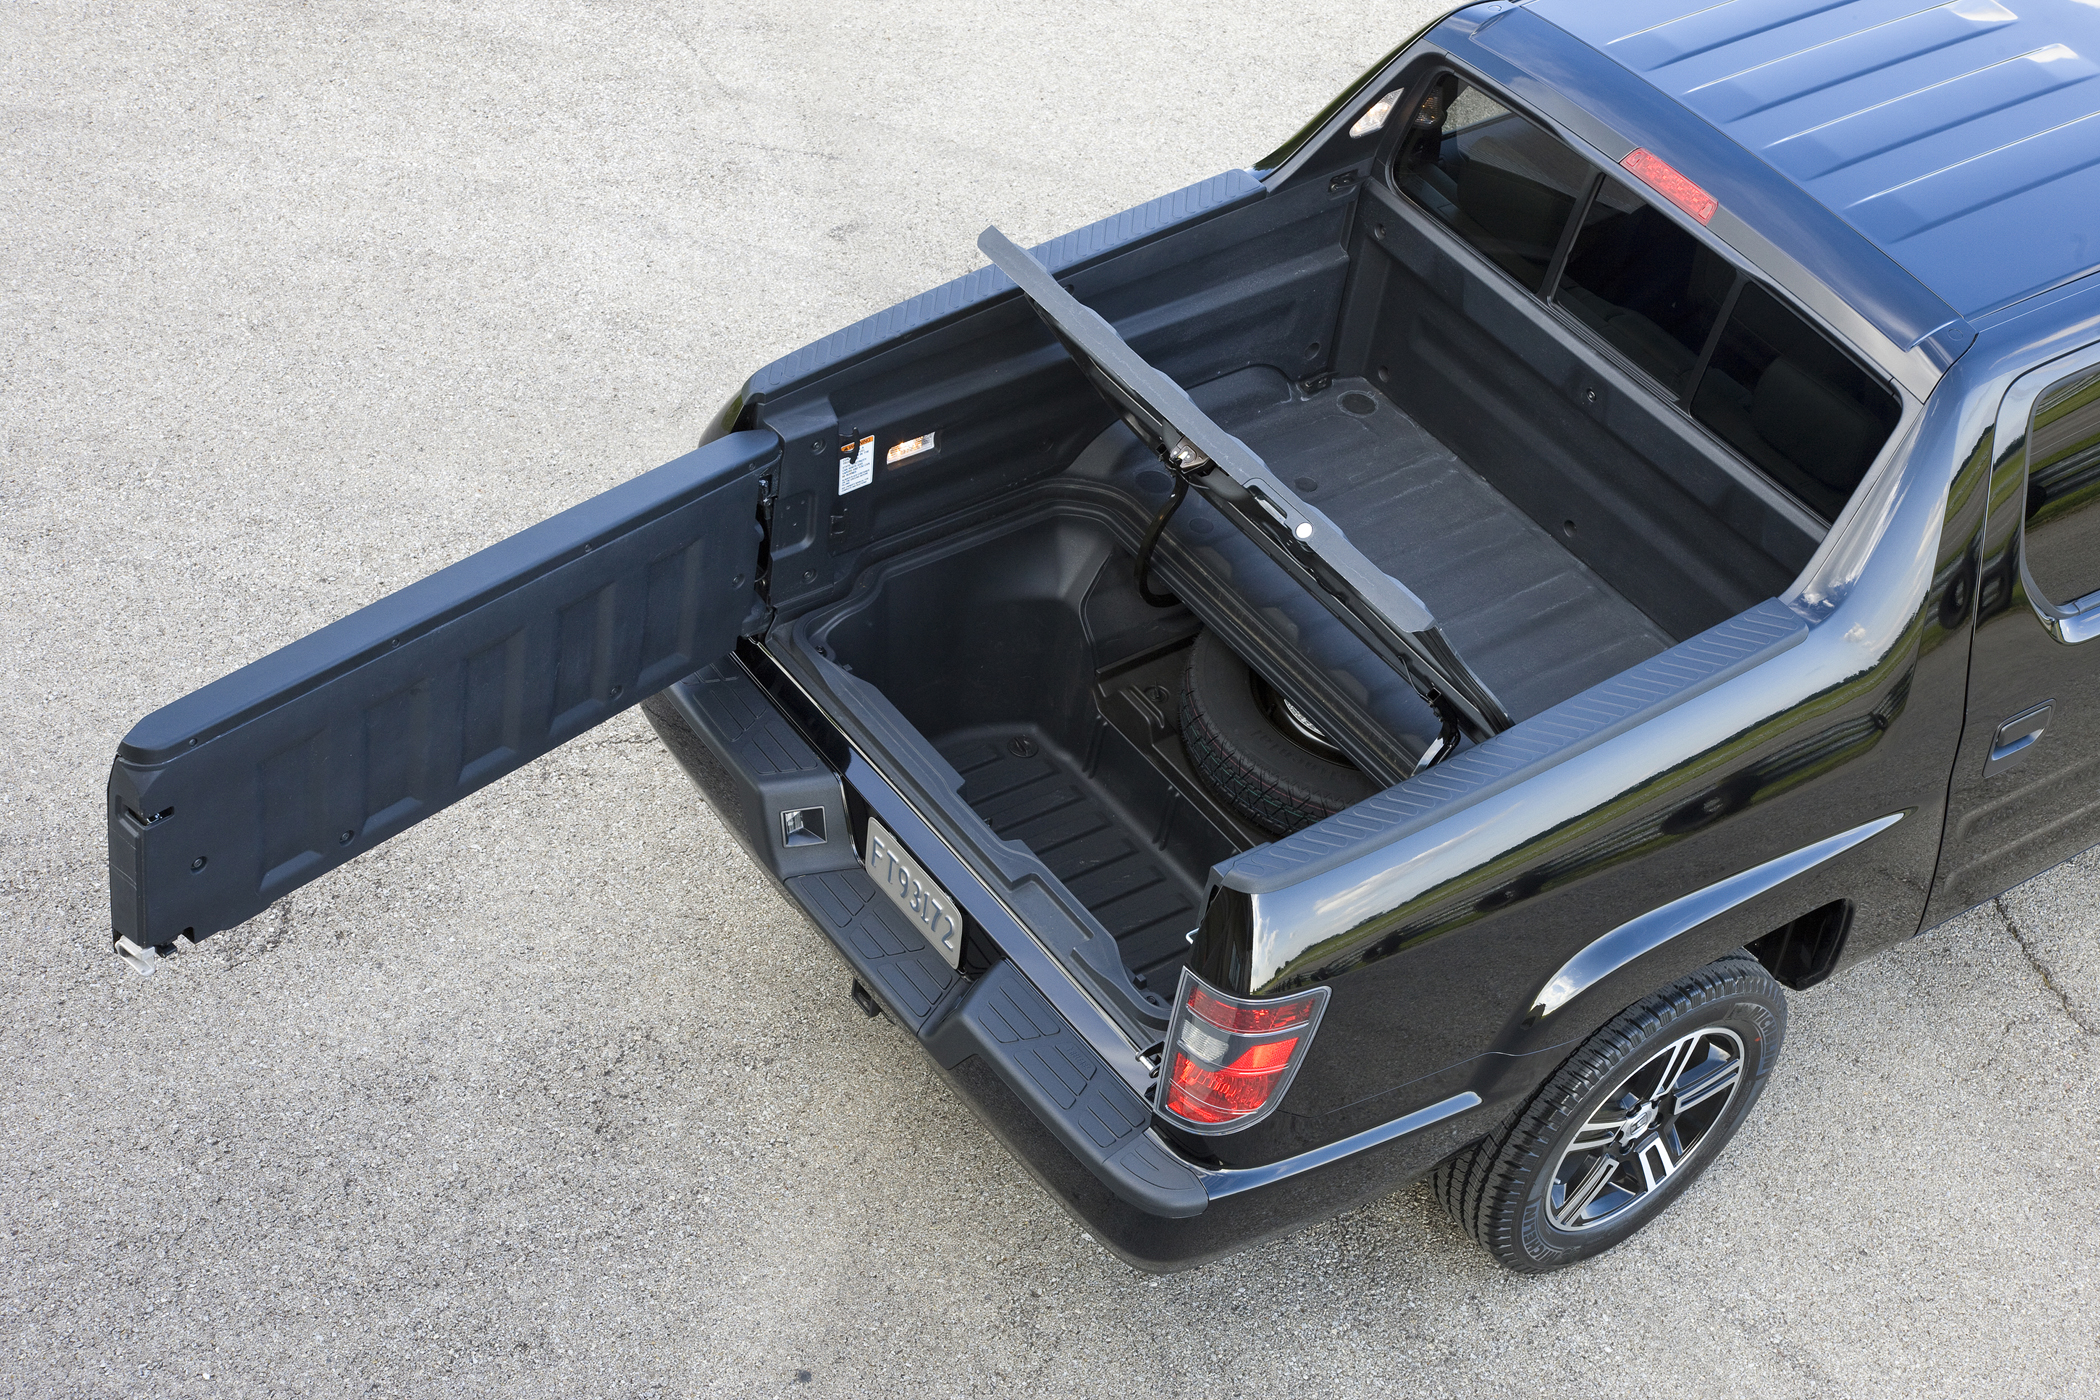 Honda Adds Sport Pickup To 2012 Ridgeline Lineup Truck Talk Trailer Hitch Wiring The Dashboard And Center Console Are Practical Utilitarian Designs Speedometer Is Large Mounted Easy Read Climate Control Radio